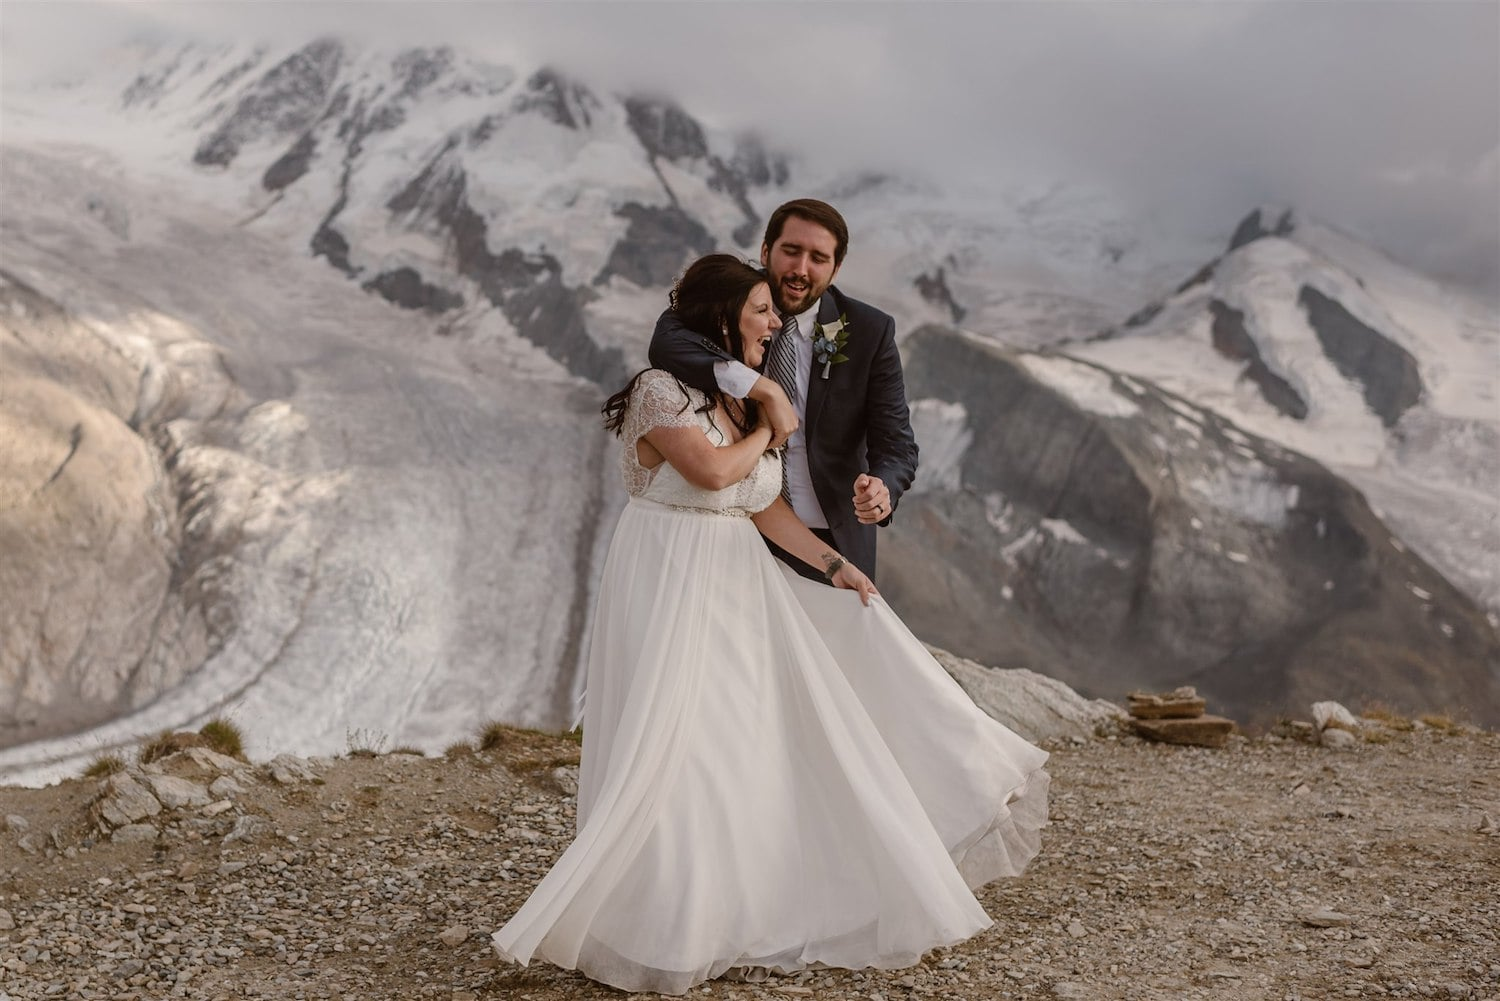 Couple dancing on the Swiss Mountains